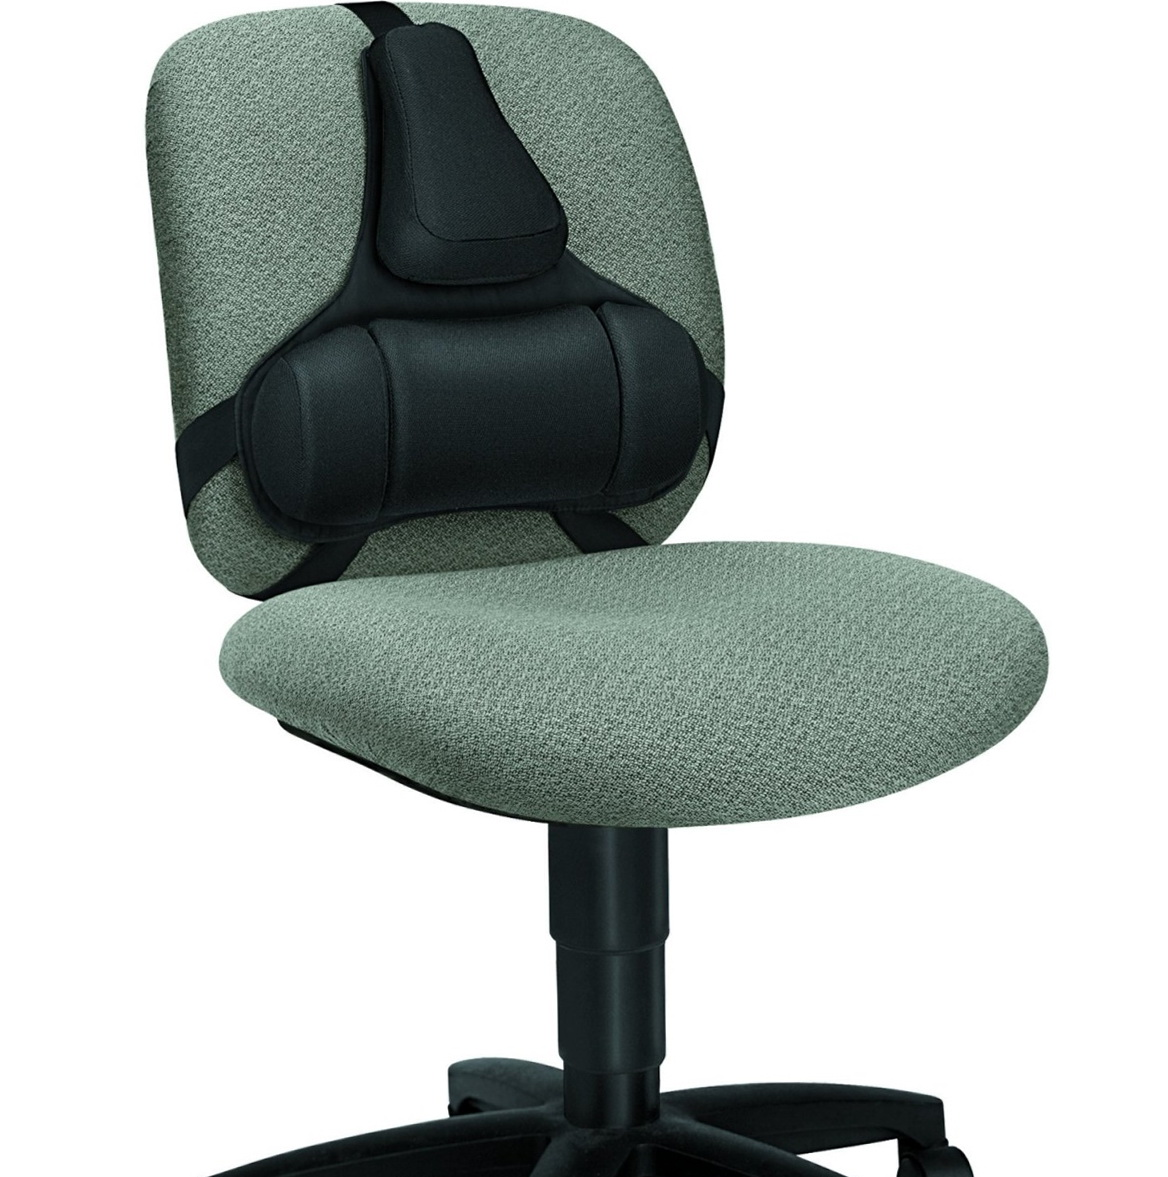 Seat Cushion For Office Chair Back Pain Home Design Ideas